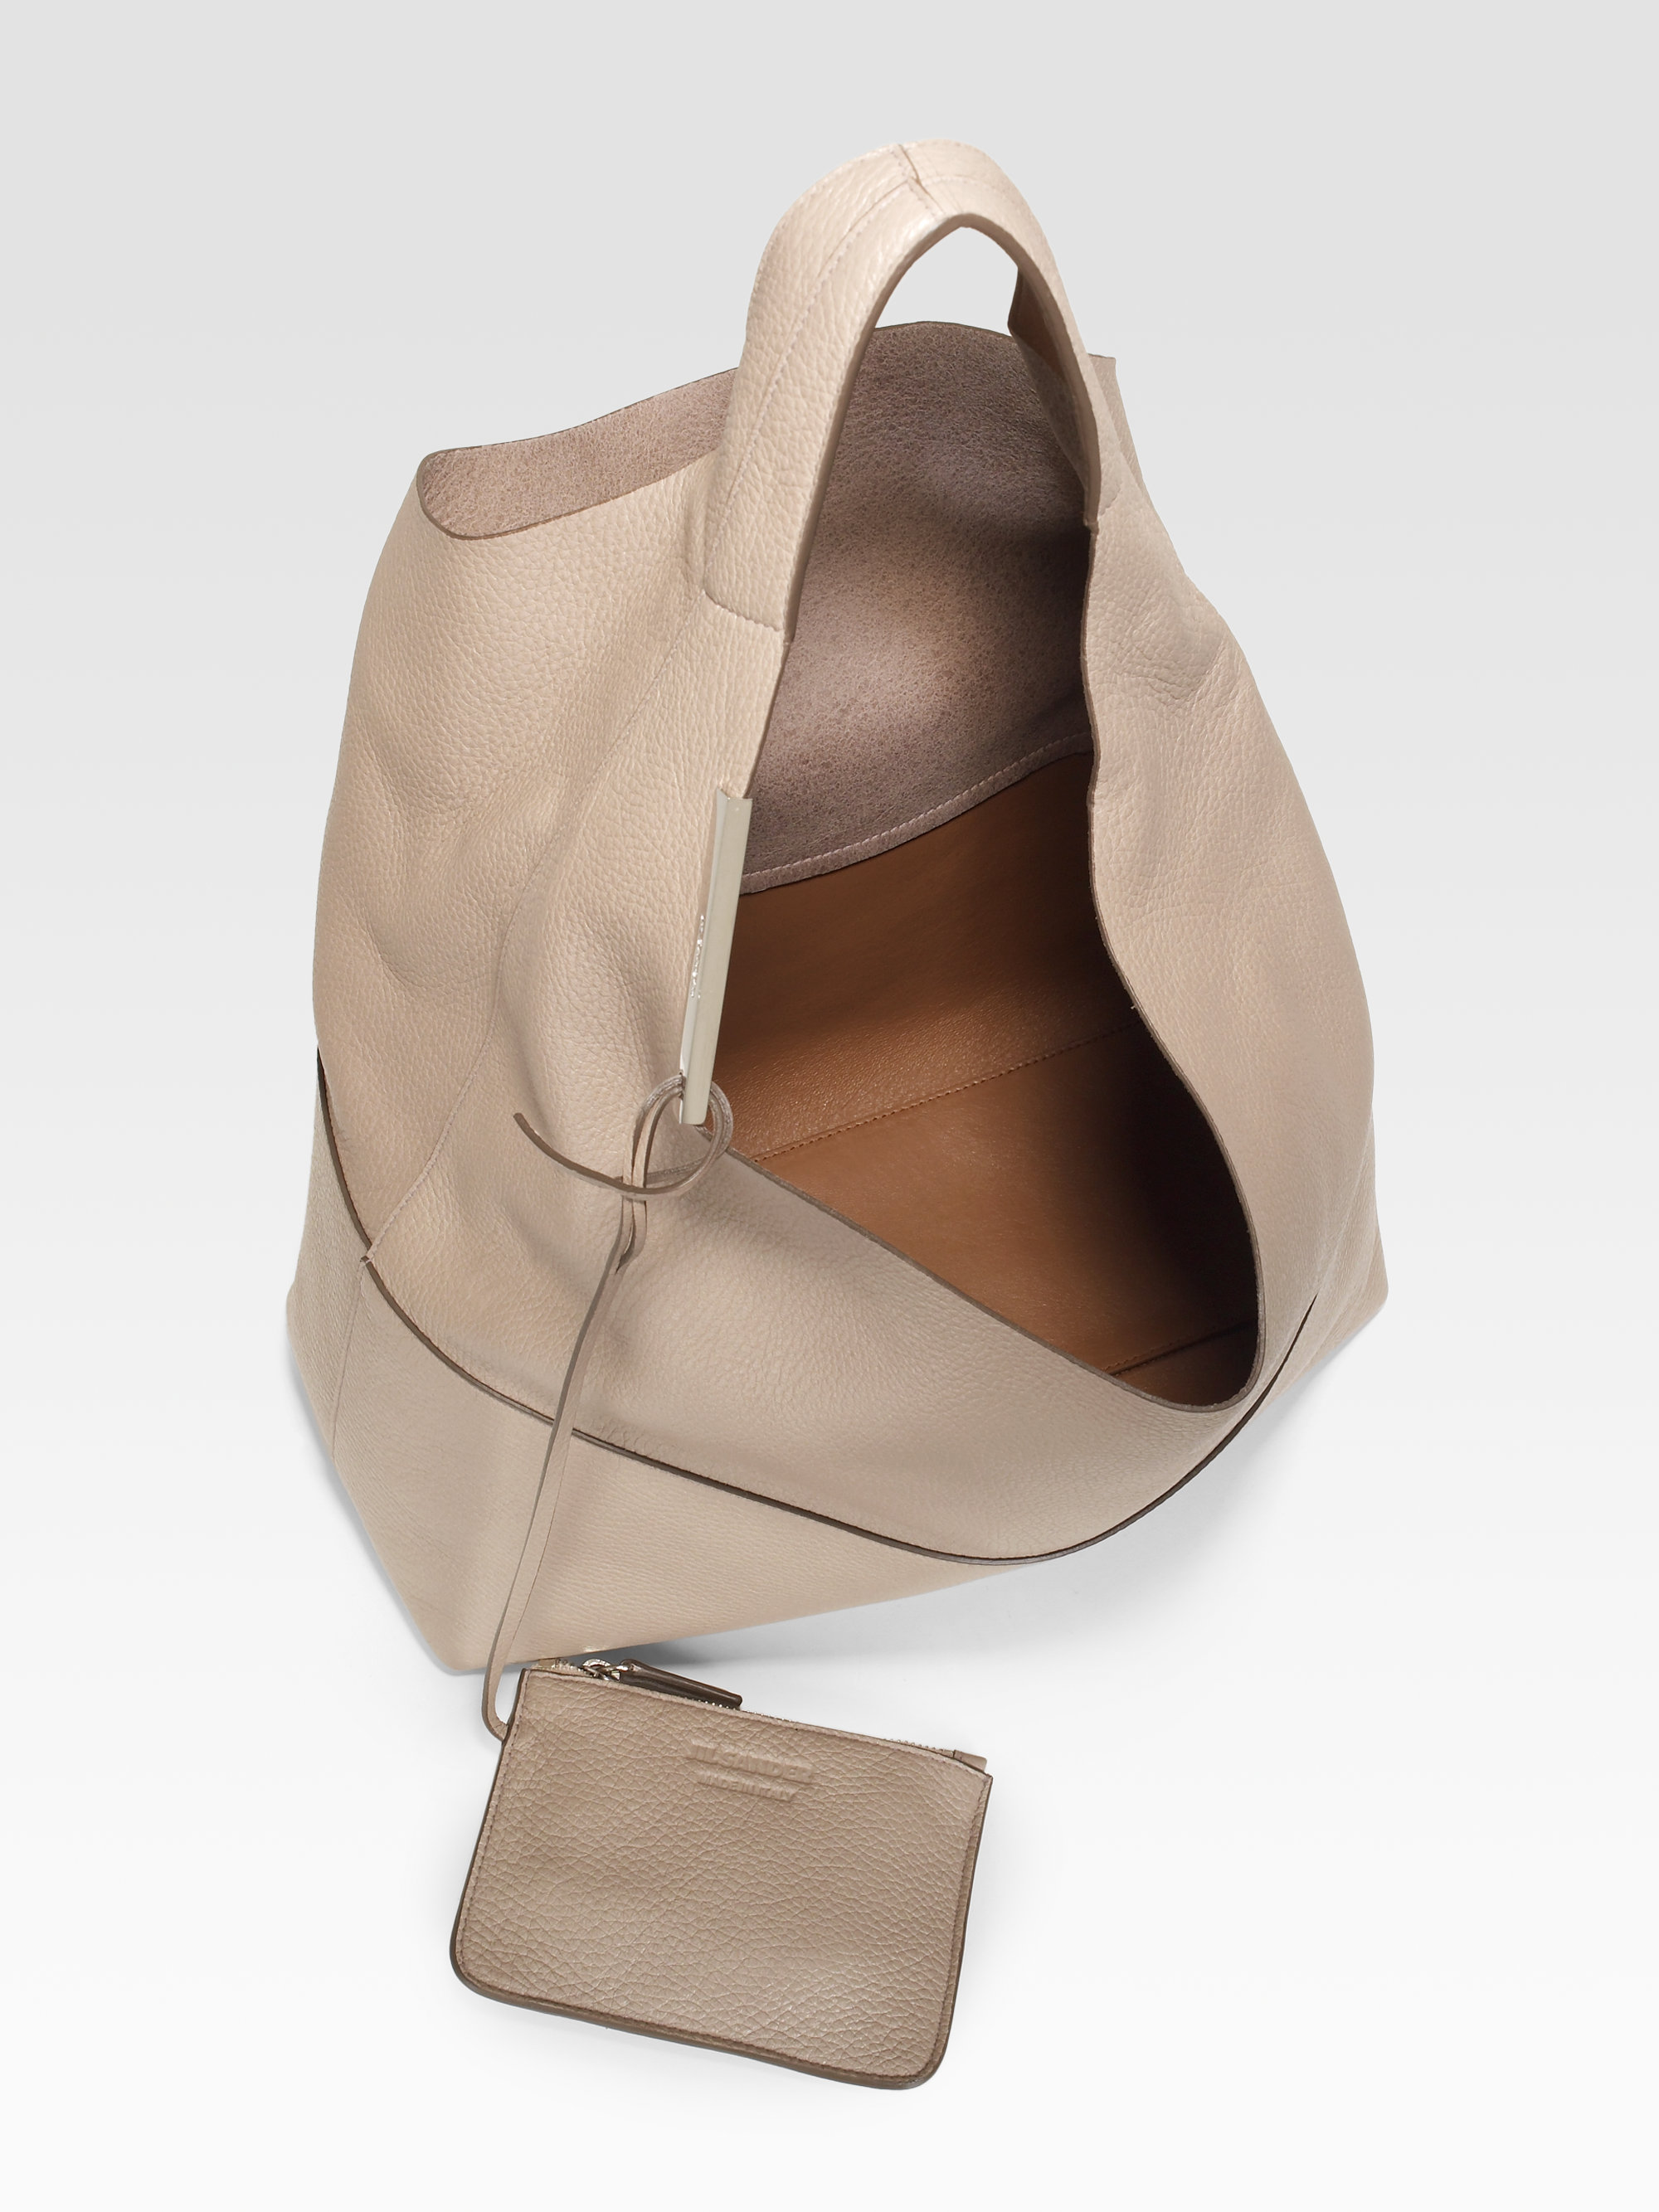 Lyst - Jil Sander Soft Shoulder Hobo in Natural 1af3084635de9